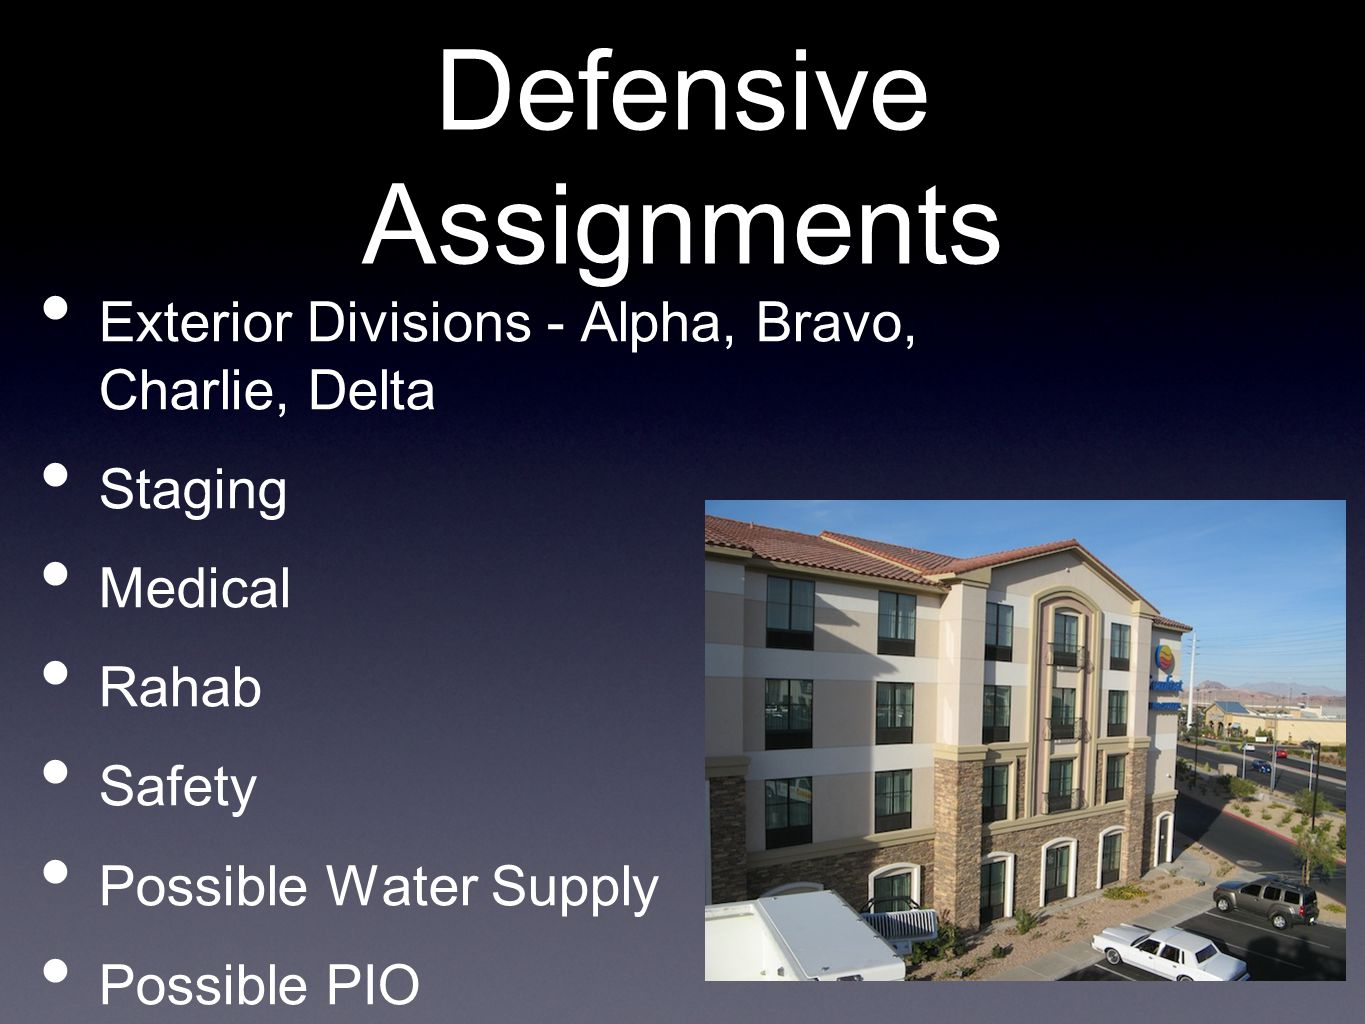 Defensive Assignments